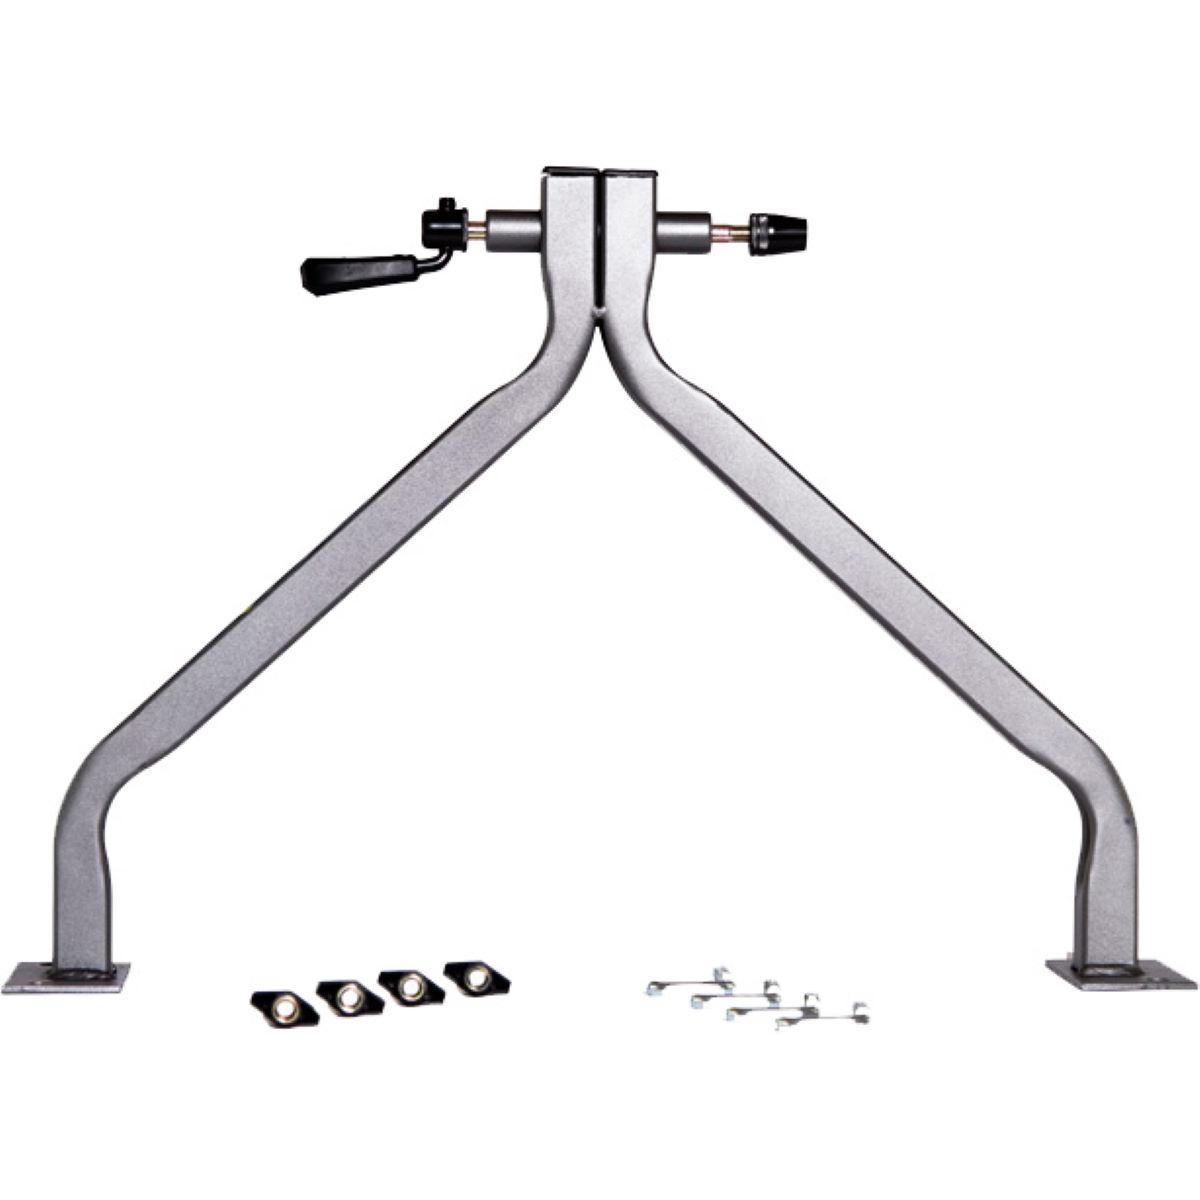 CycleOps Front Fork Stand For Rollers - Recambios para rodillos